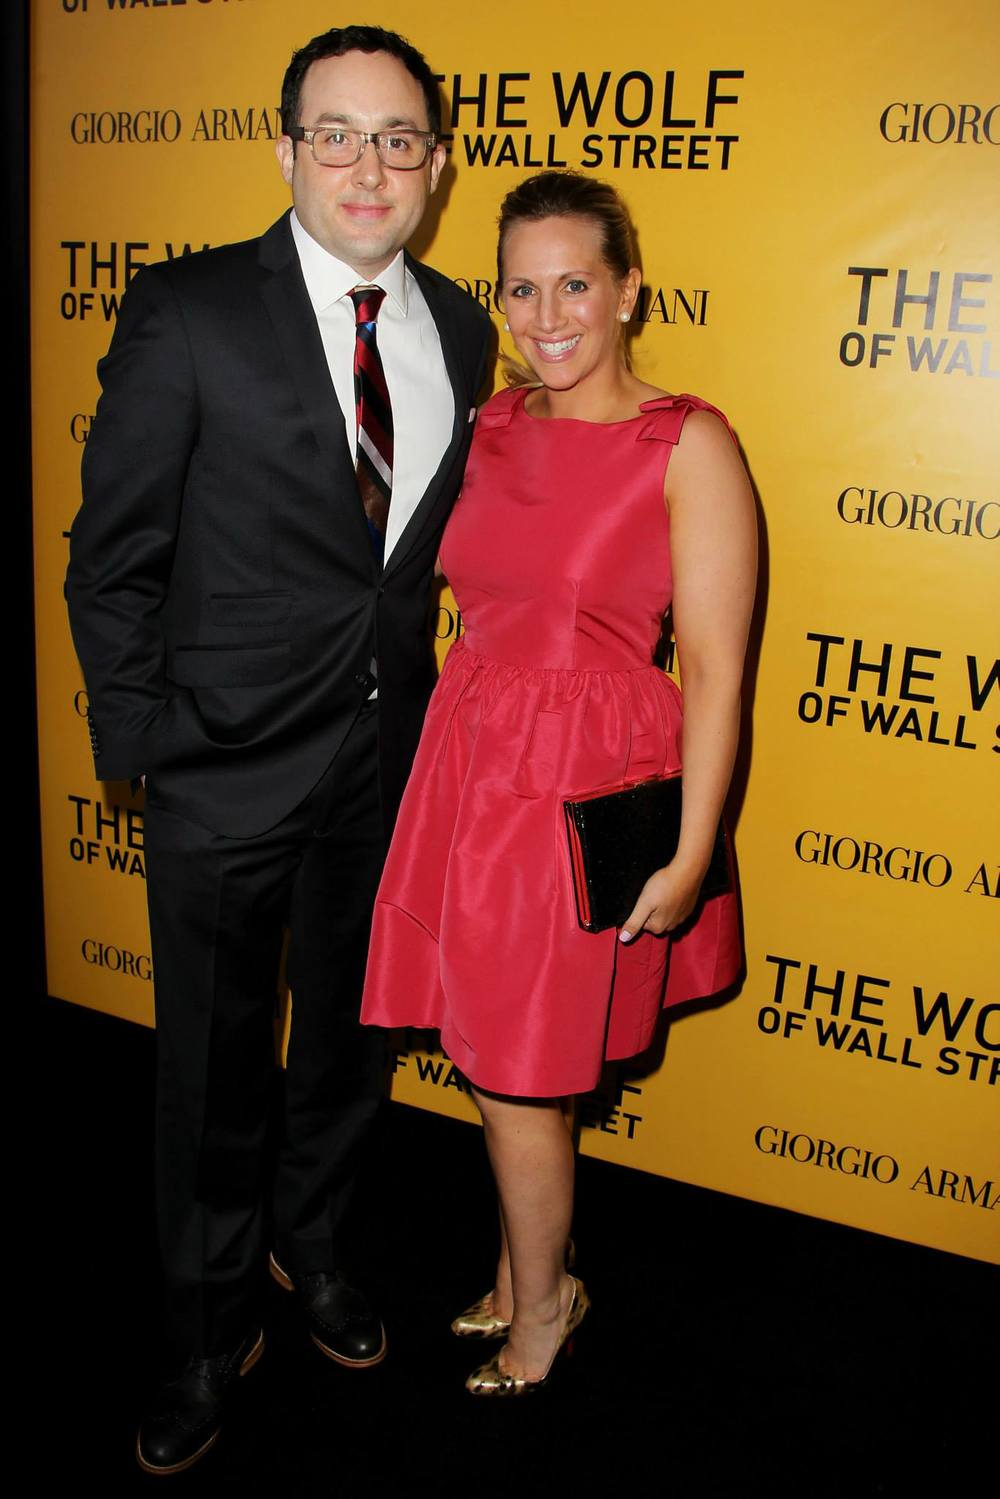 red-granite-pictures-red-granite-international-wolf-of-wall-street-nyc-premiere.jpg